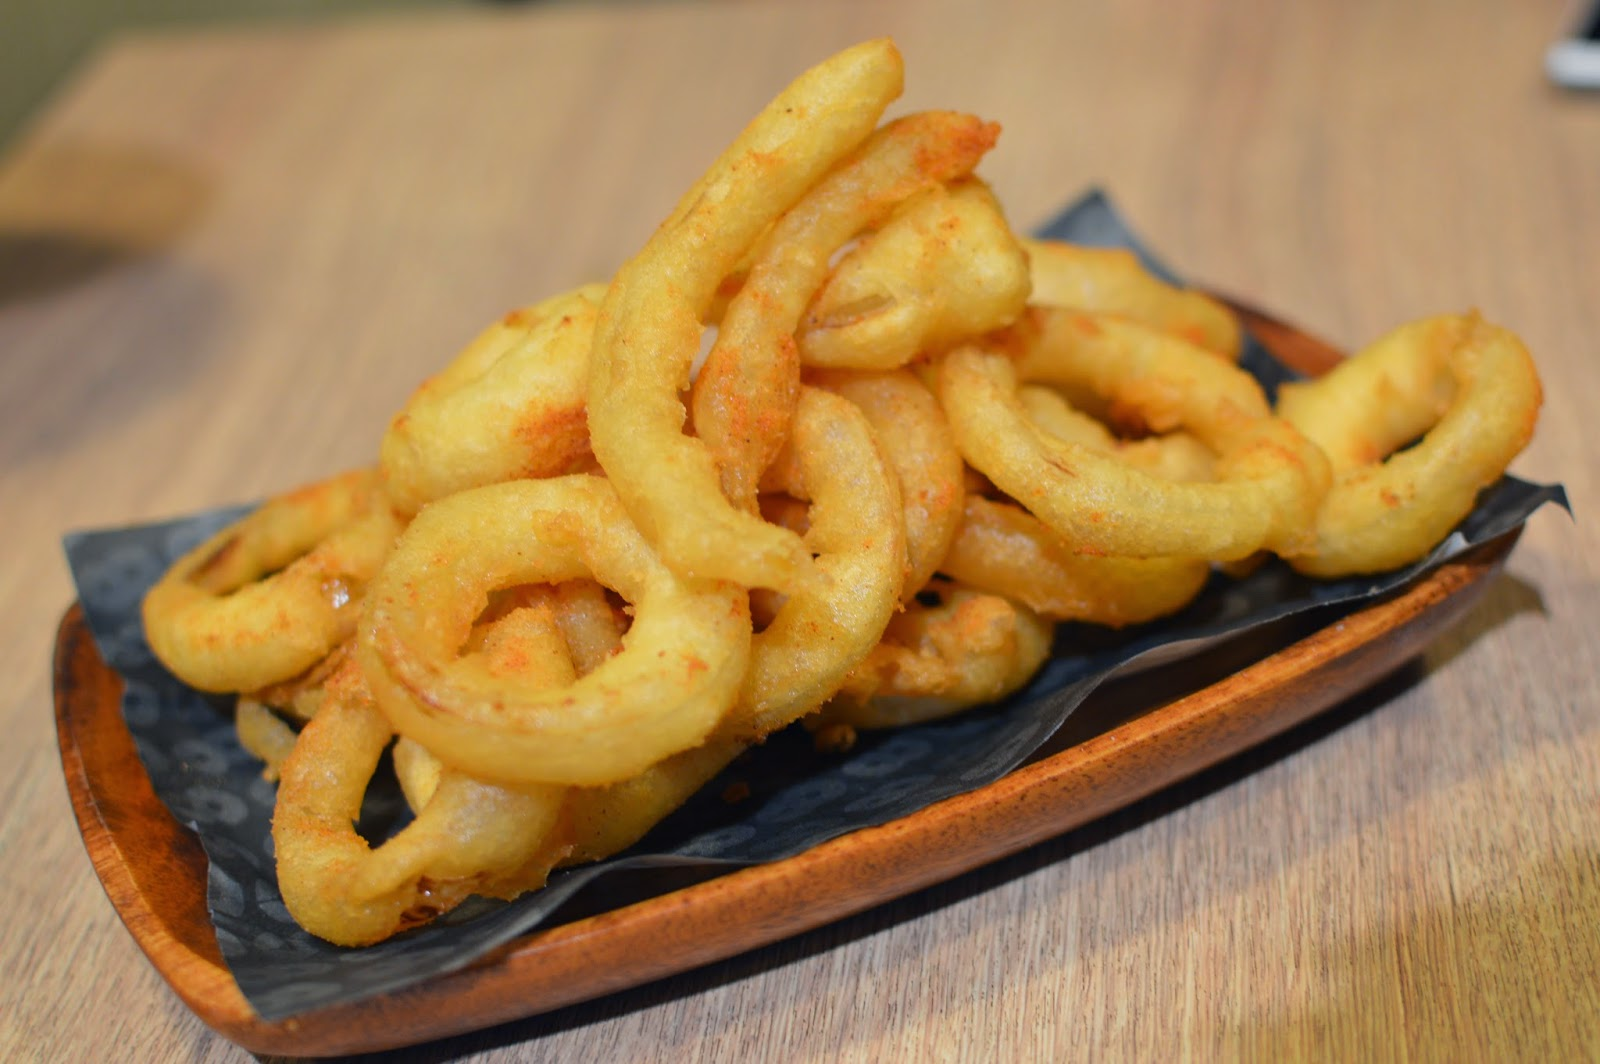 8 Cuts Burger Blends Onion Rings